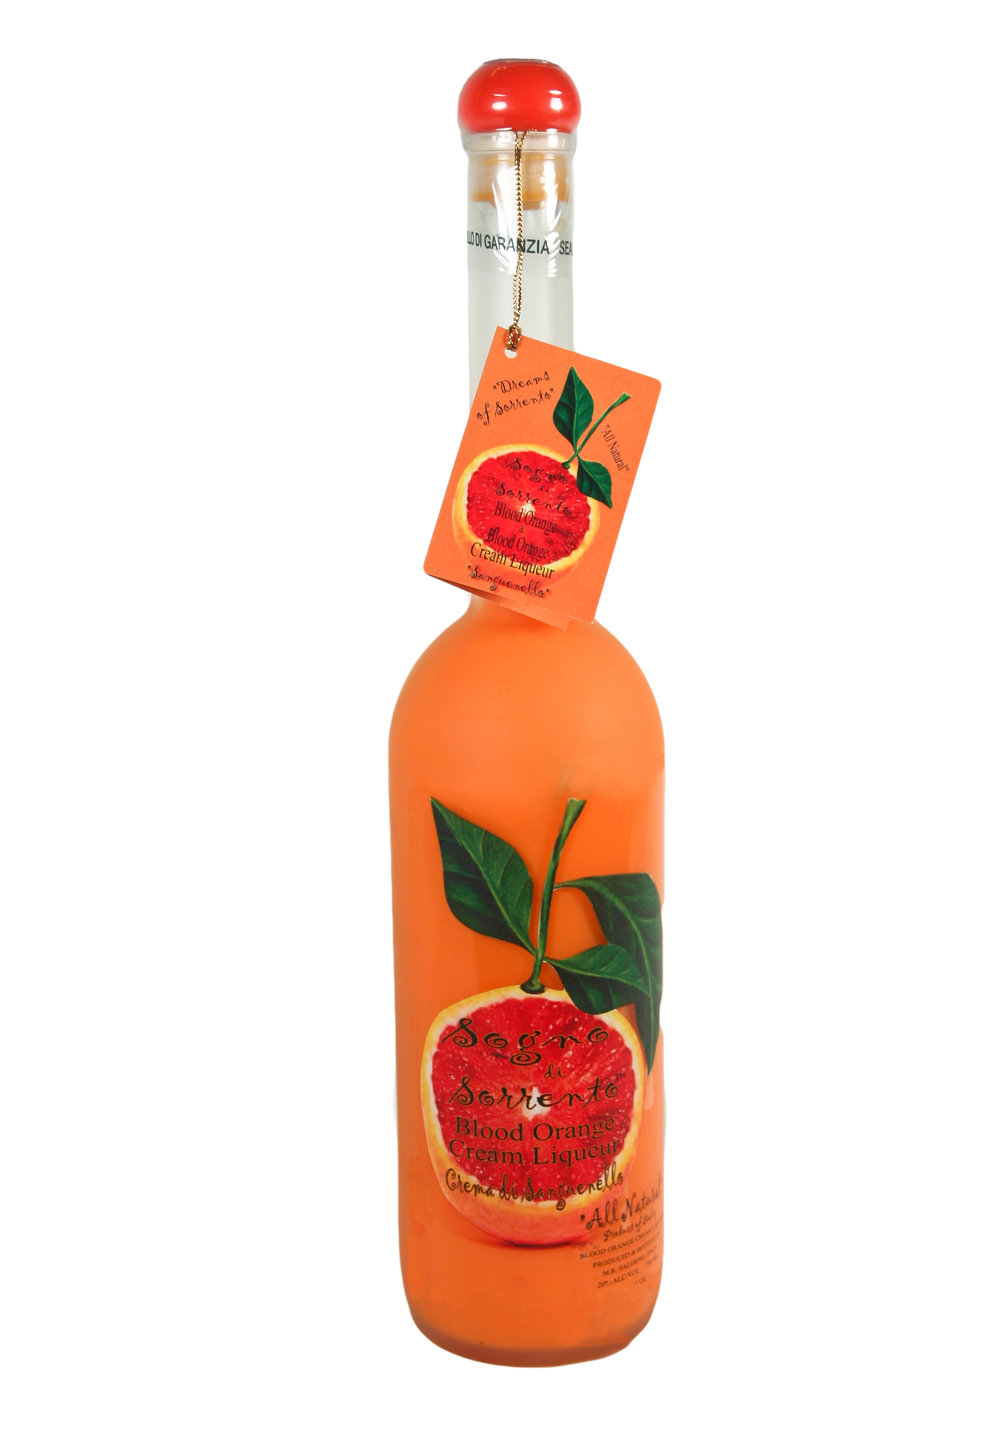 Sogno-di-Sorrento-Blood-Orange-Cream-Liqueur.jpg